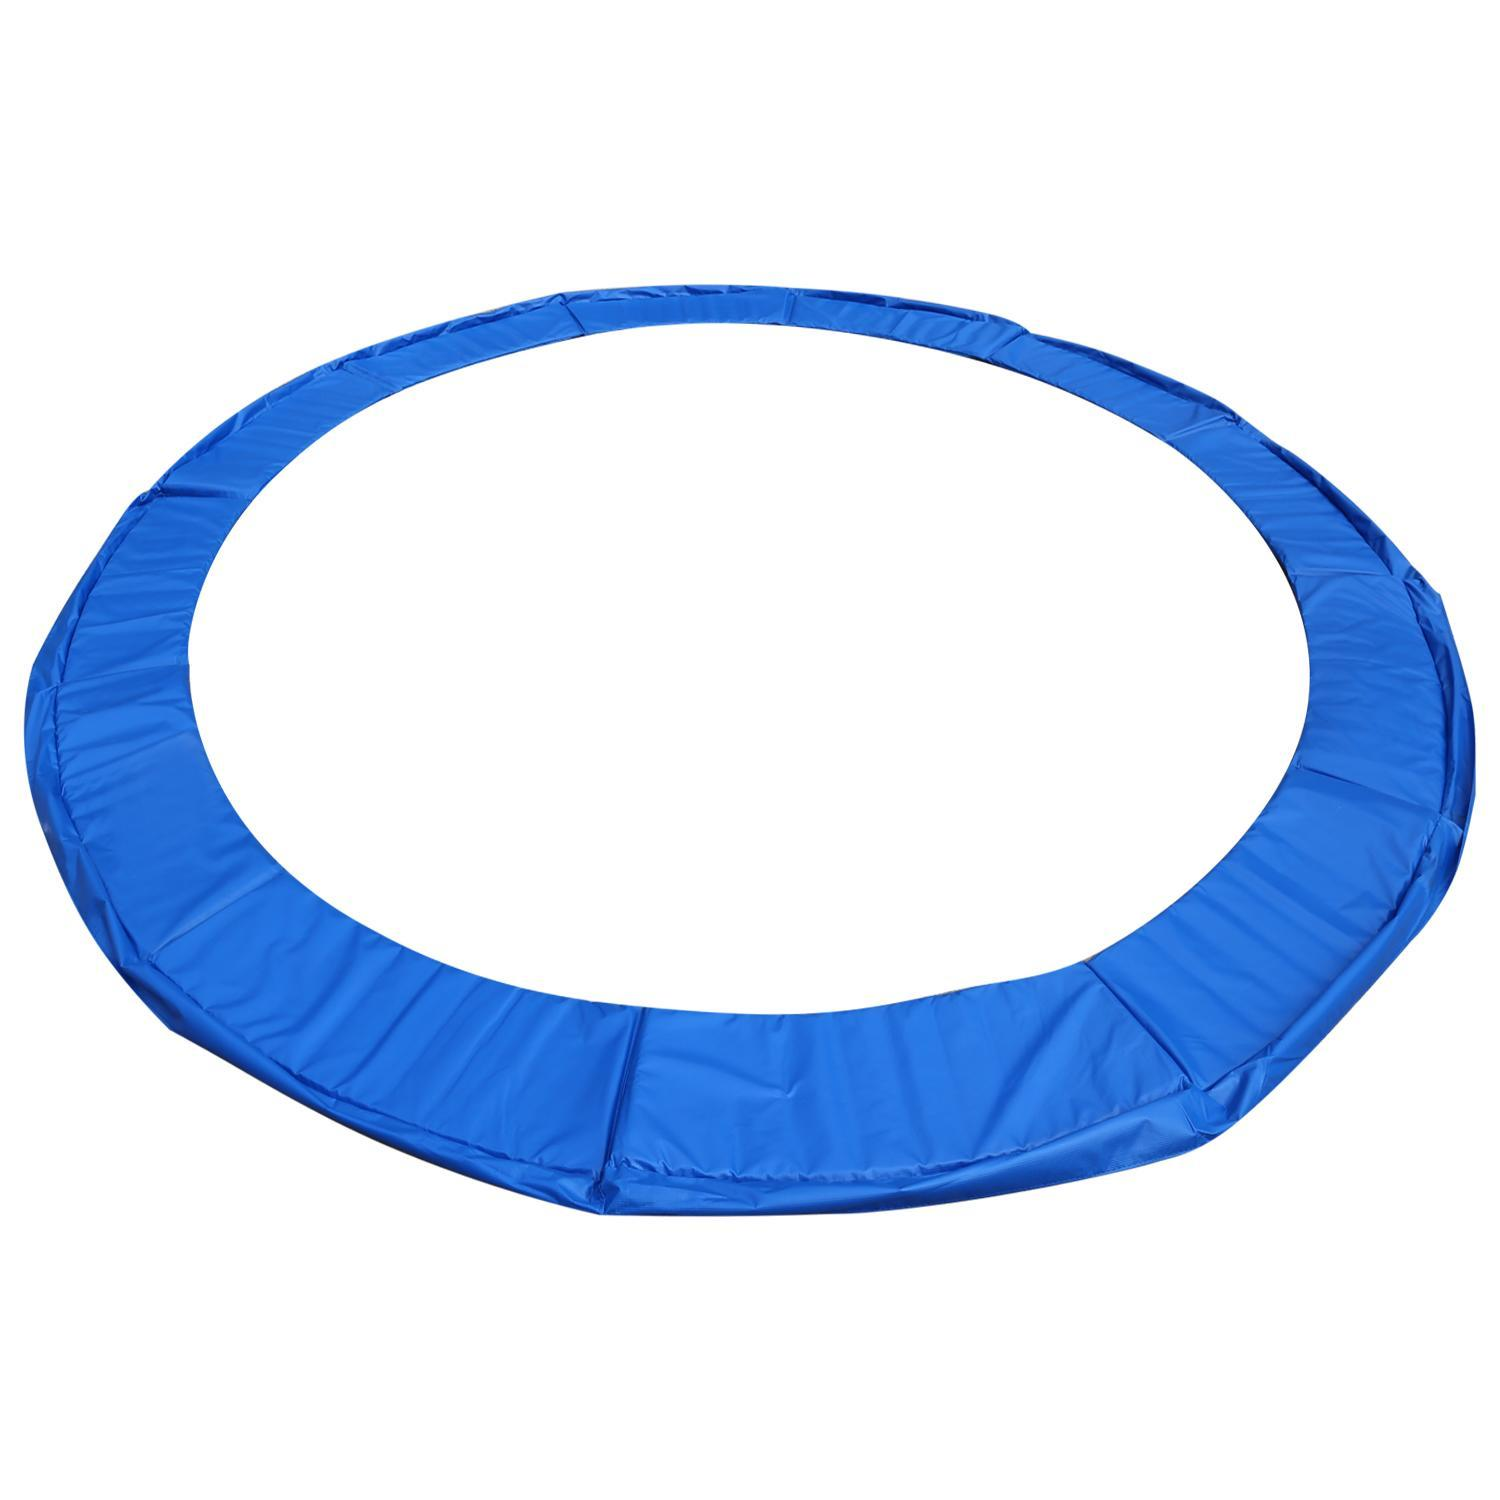 15mm Safety Pad Spring Round Frame Pad Cover Replacement for 10FT/12FT/14FT/15FT Trampoline BEDYDS